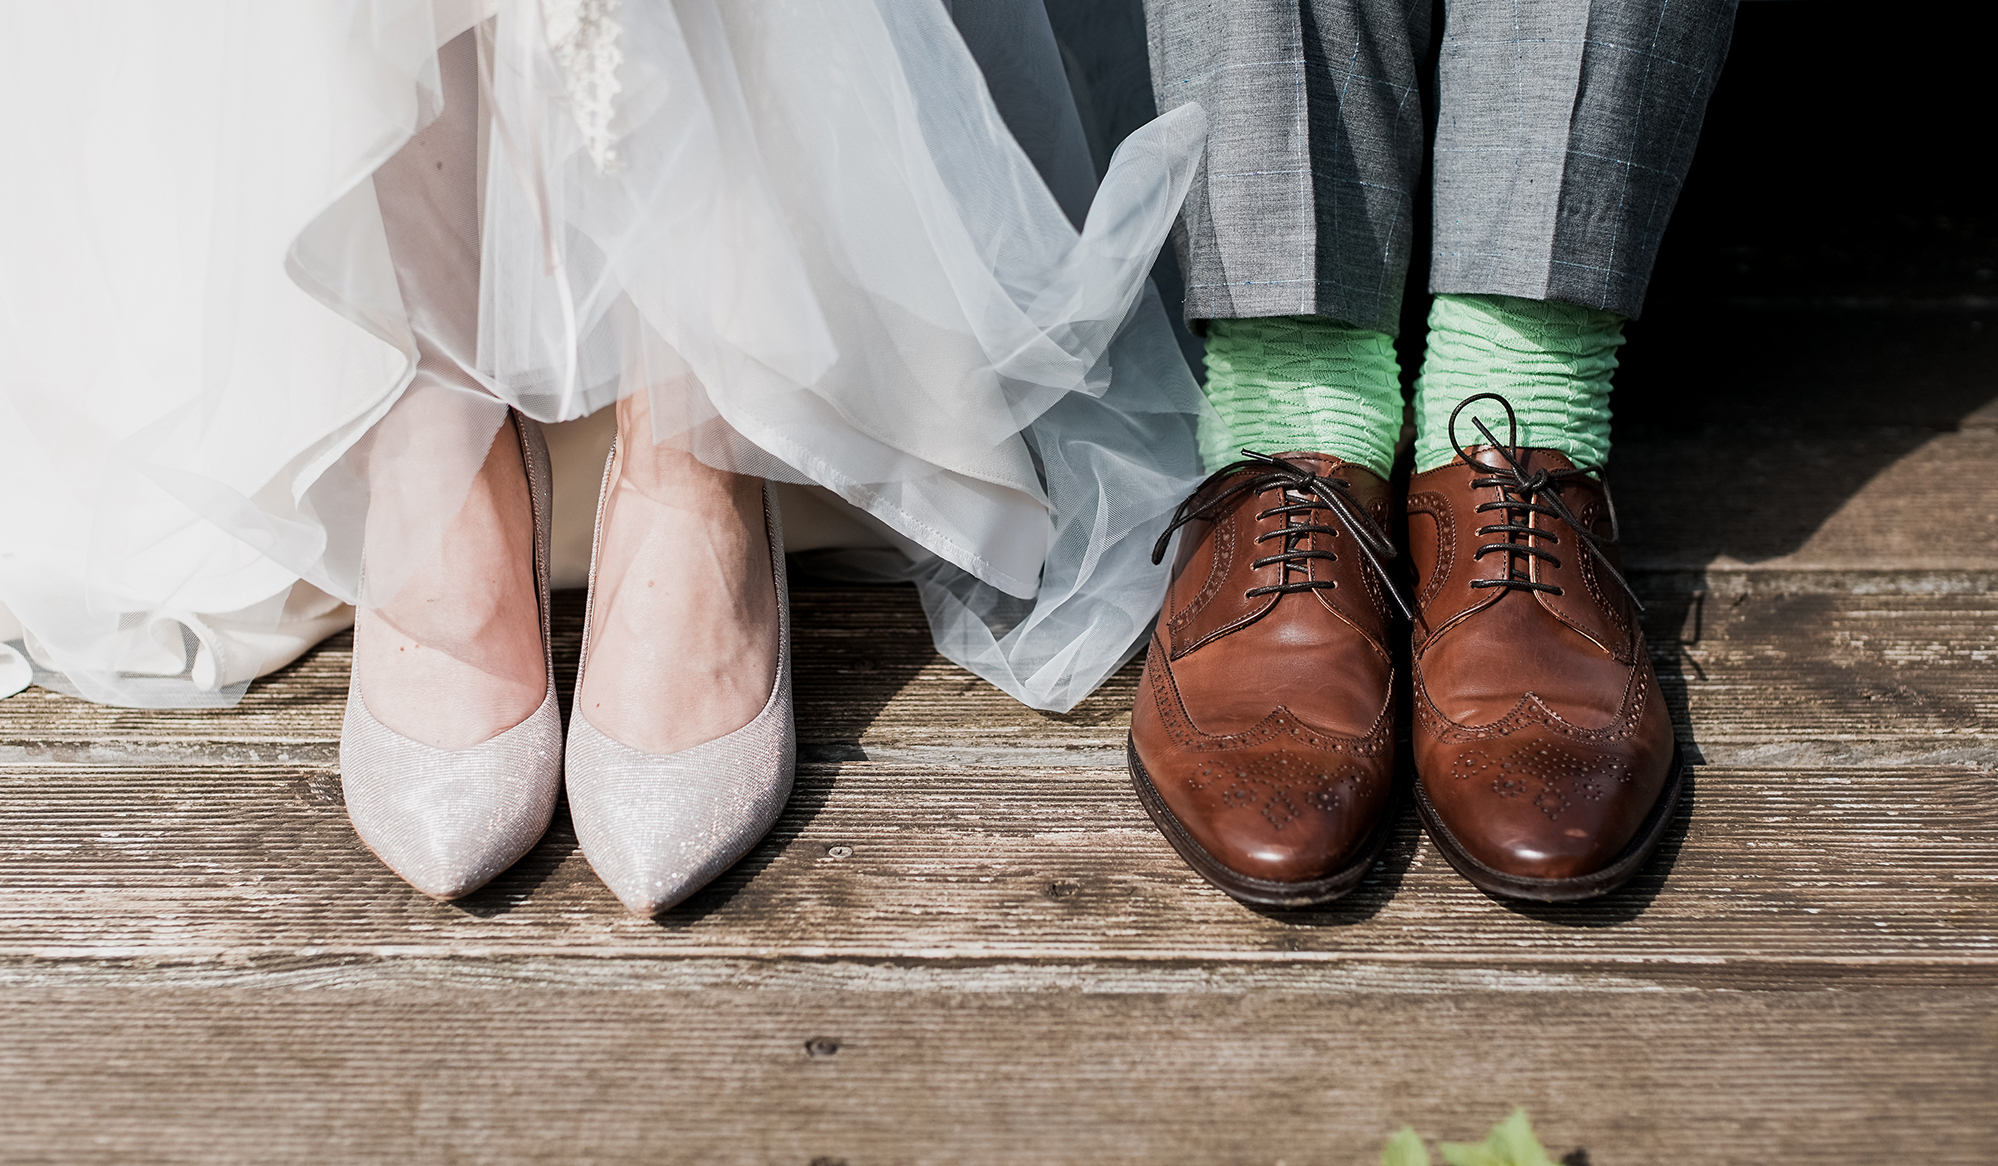 The Best Wedding Flats for Staying Comfortable (and Stylish) on Your Big Day